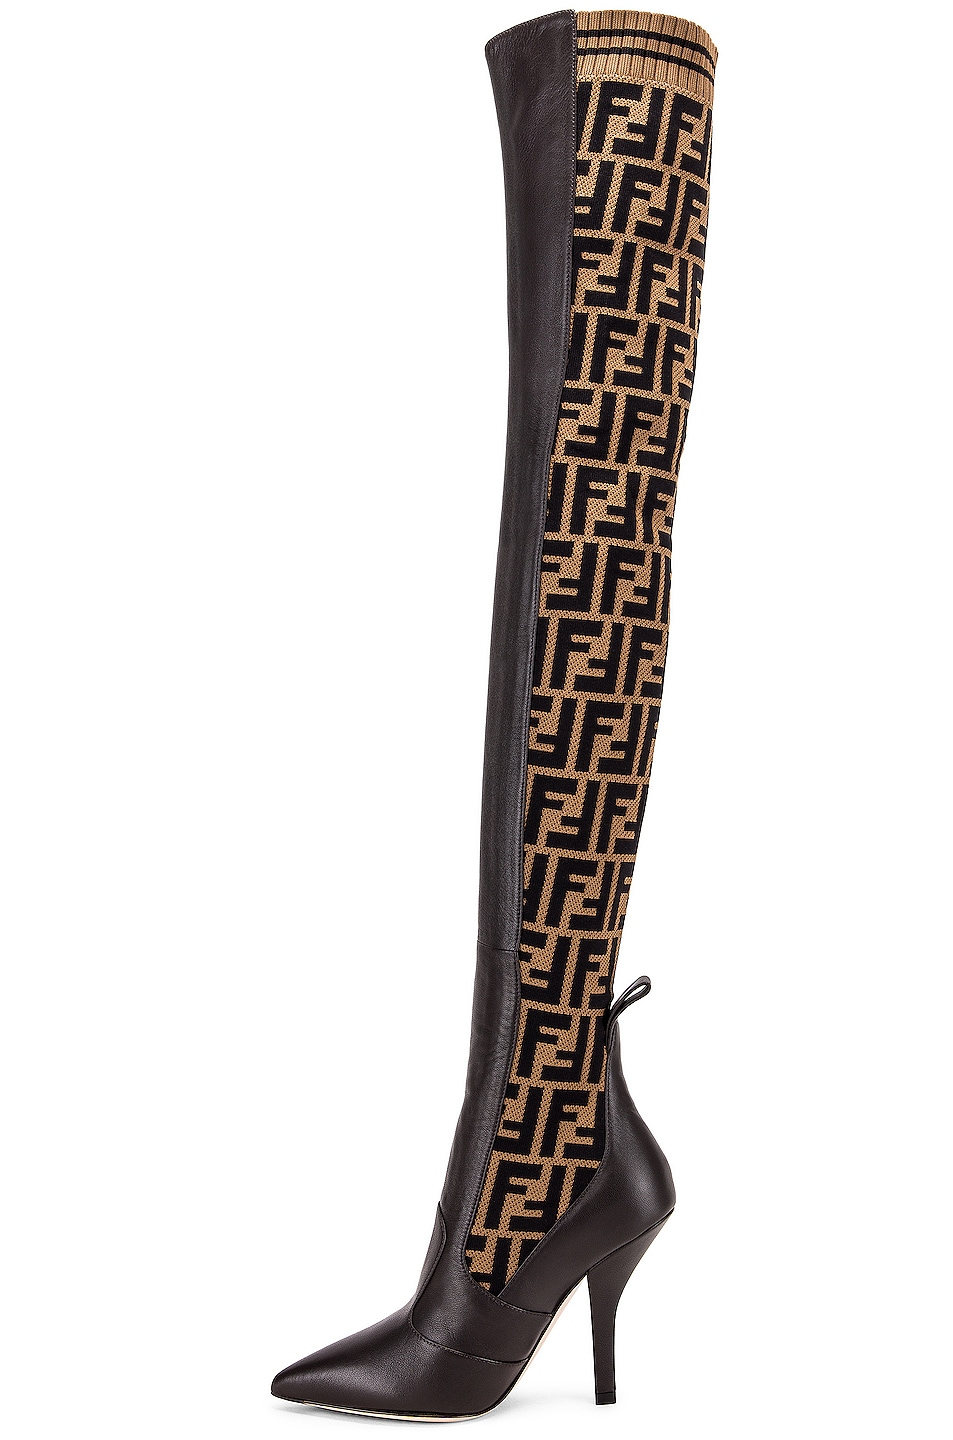 Image 5 of Fendi Logo Over the Knee Heel Boots in Black & Brown